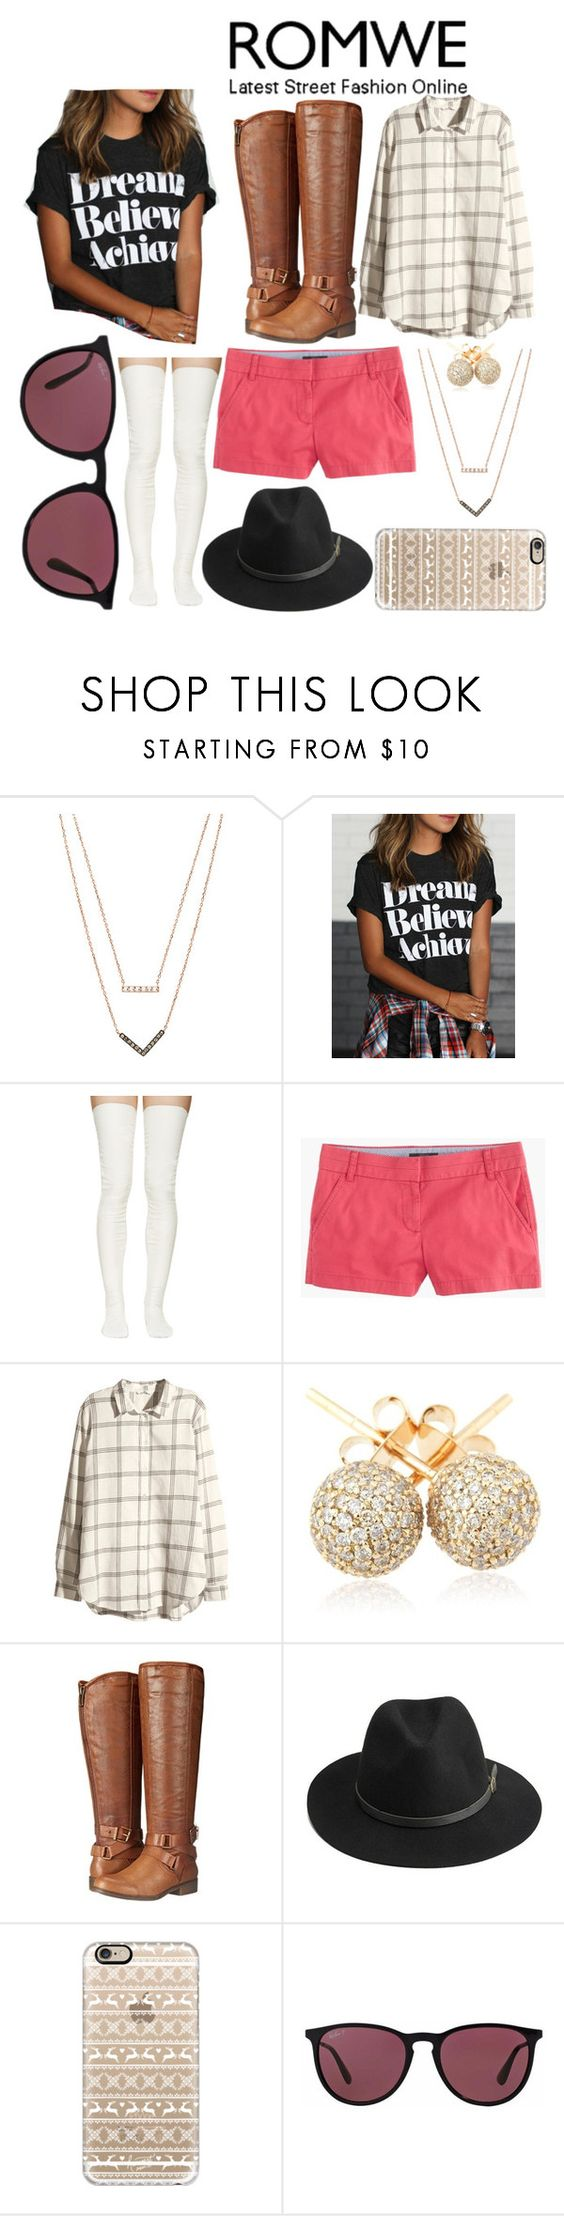 """ROMWE contest entry"" by pmolly ❤ liked on Polyvore featuring Michael Kors, Sacai Luck, J.Crew, H&M, Loushelou, Madden Girl, BeckSöndergaard, Casetify and Ray-Ban"